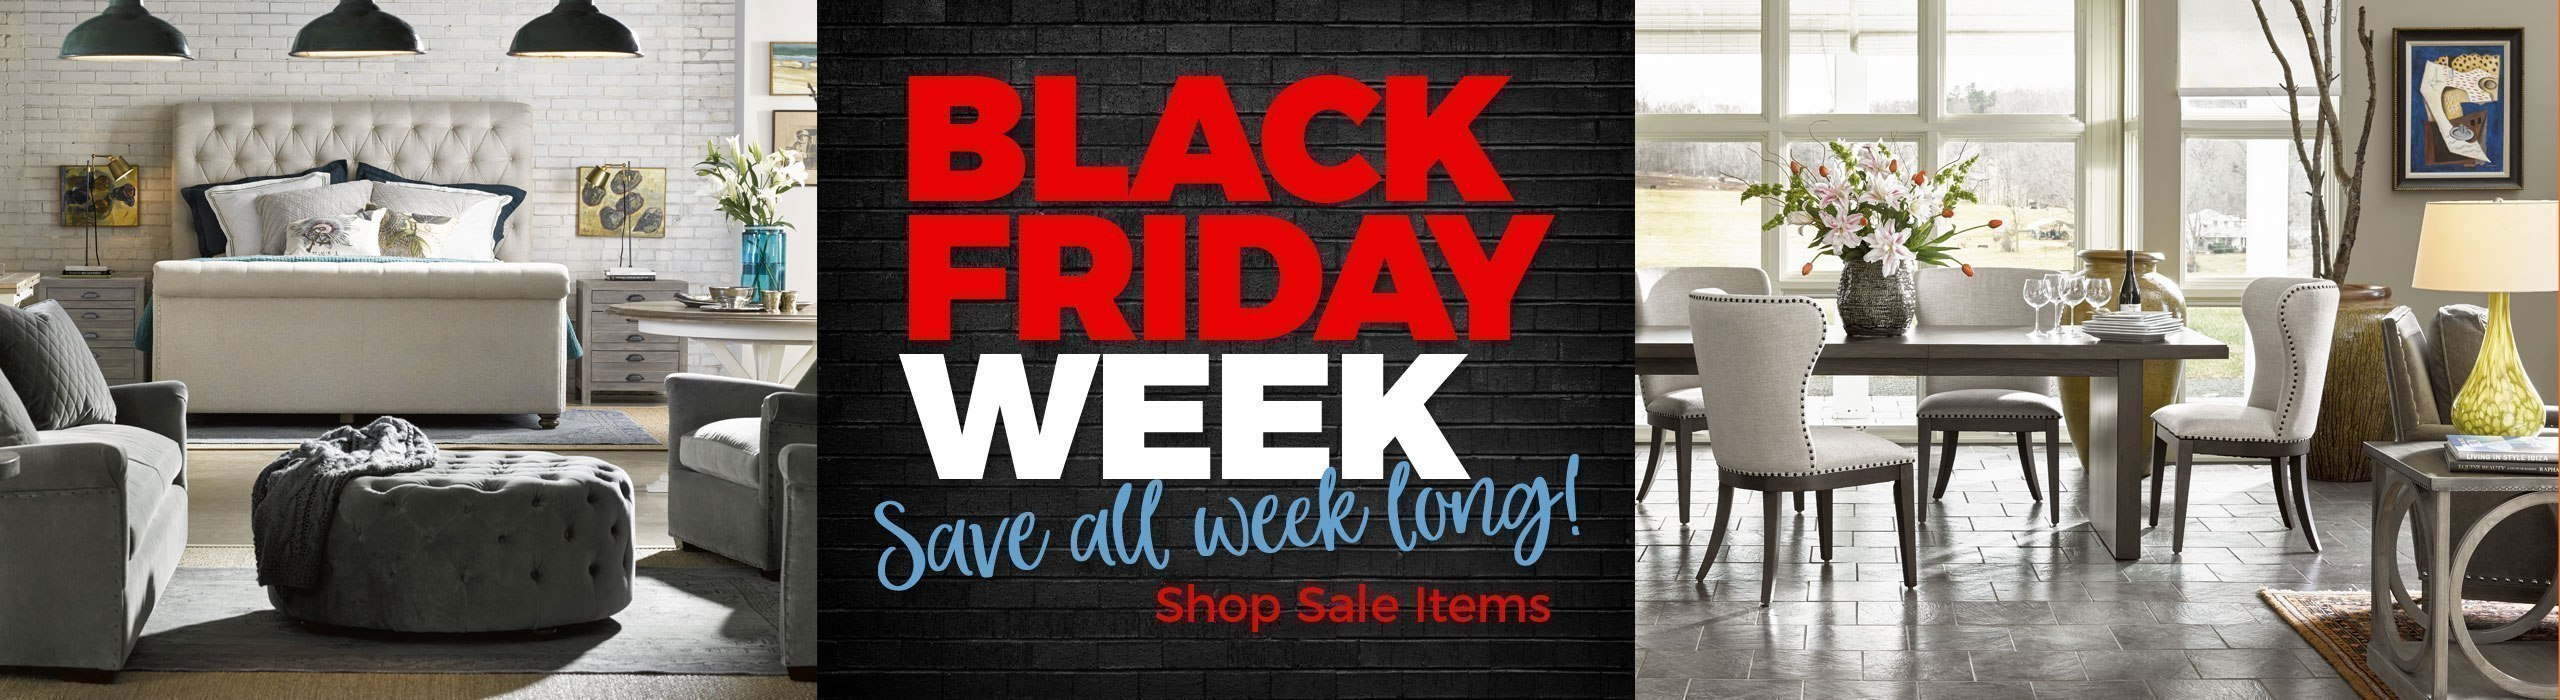 Black Friday Week Furniture Sales